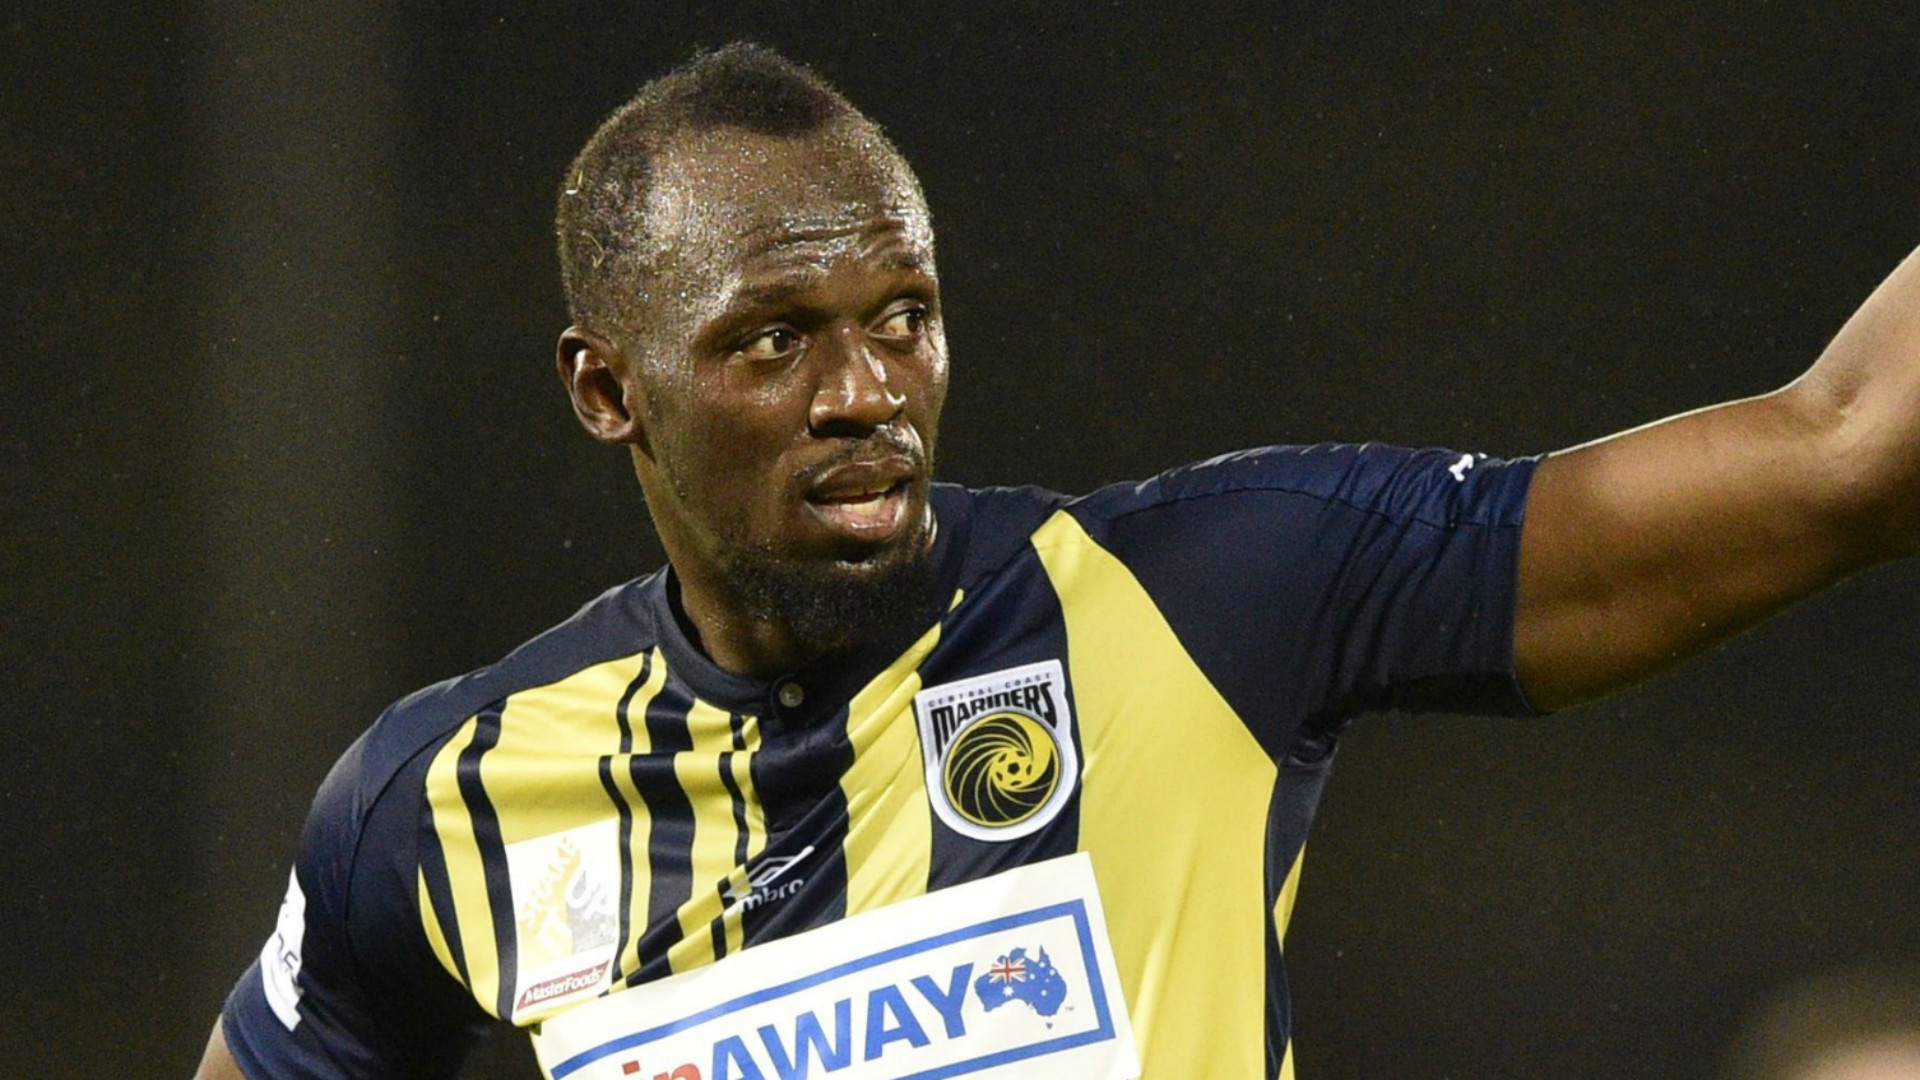 Mariners coach's brutal truth bomb for Usain Bolt